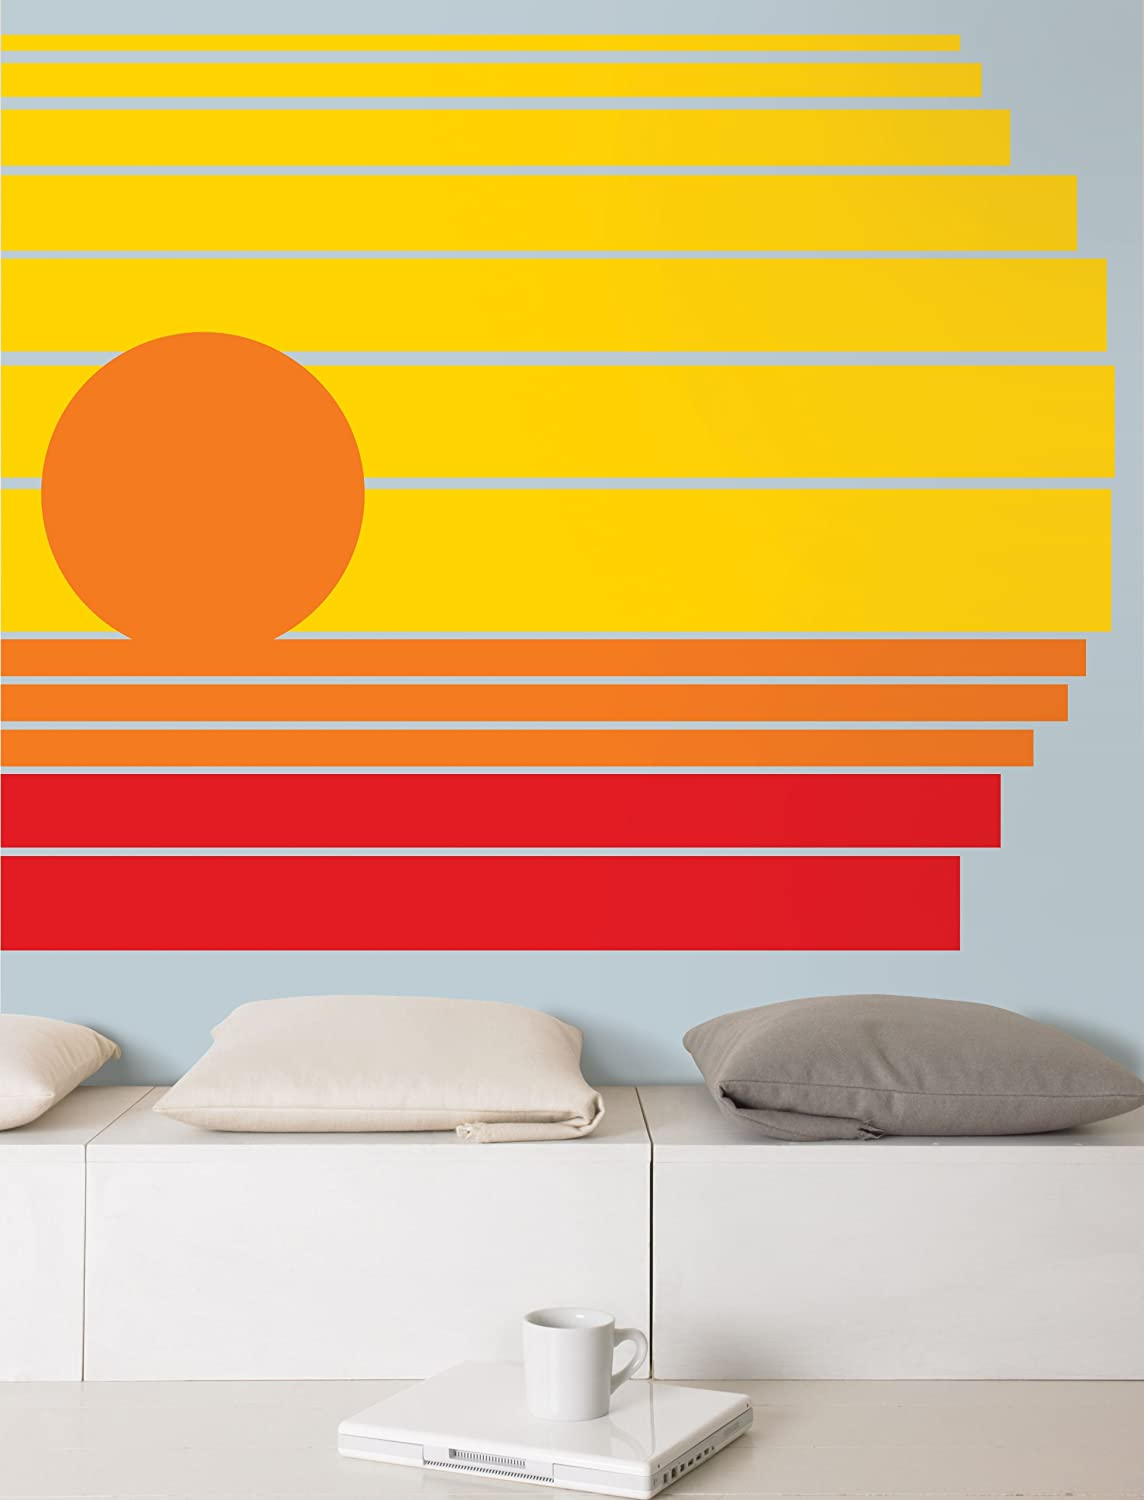 Red Hot Stripe Decal - Decorative Wall Appliques - Amazon.com